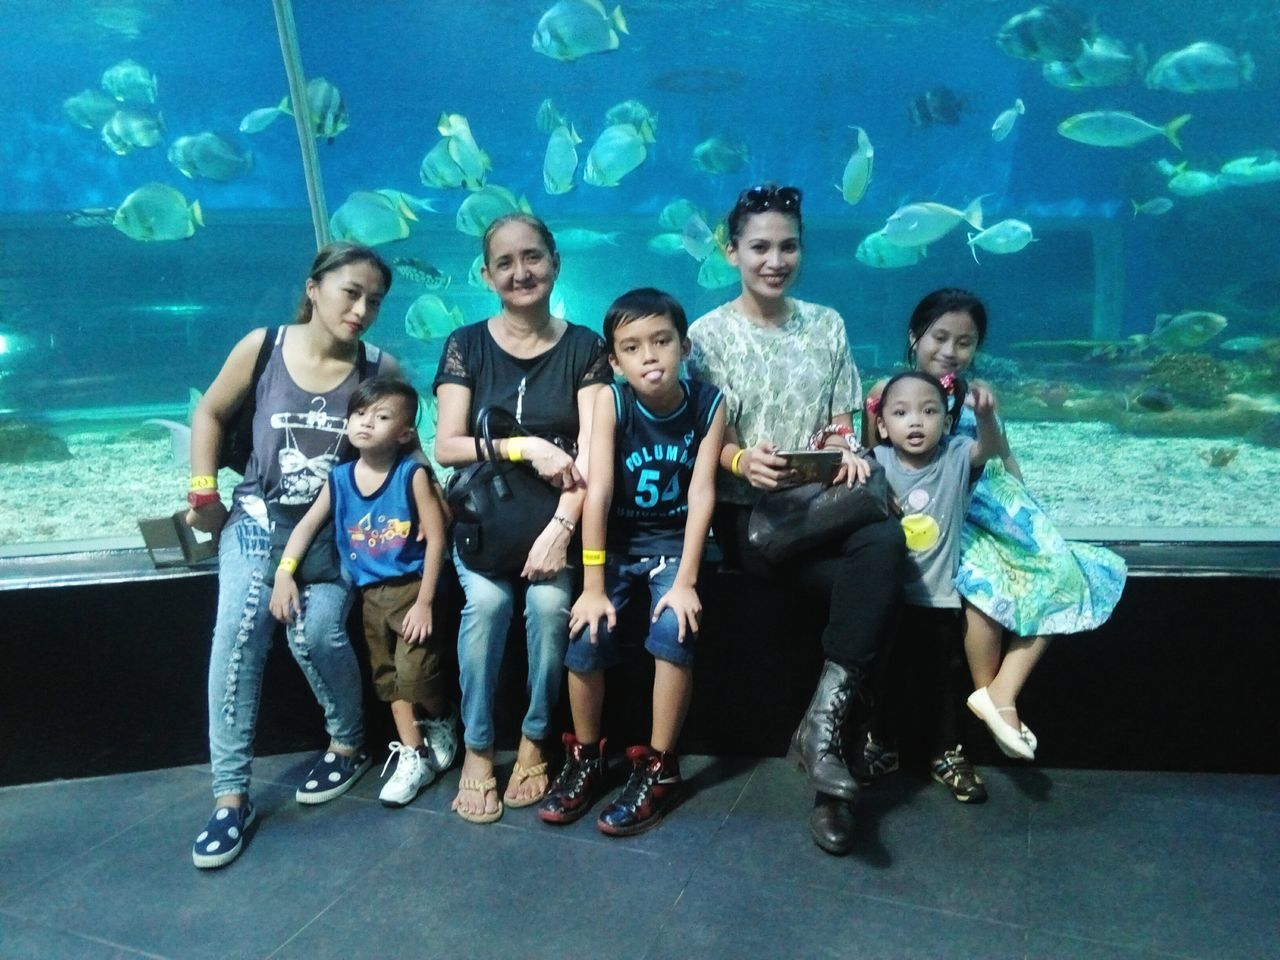 happiness, girls, smiling, casual clothing, front view, child, fun, togetherness, full length, leisure activity, aquarium, standing, enjoyment, childhood, underwater, indoors, boys, lifestyles, day, young adult, water, cheerful, women, men, portrait, people, adult